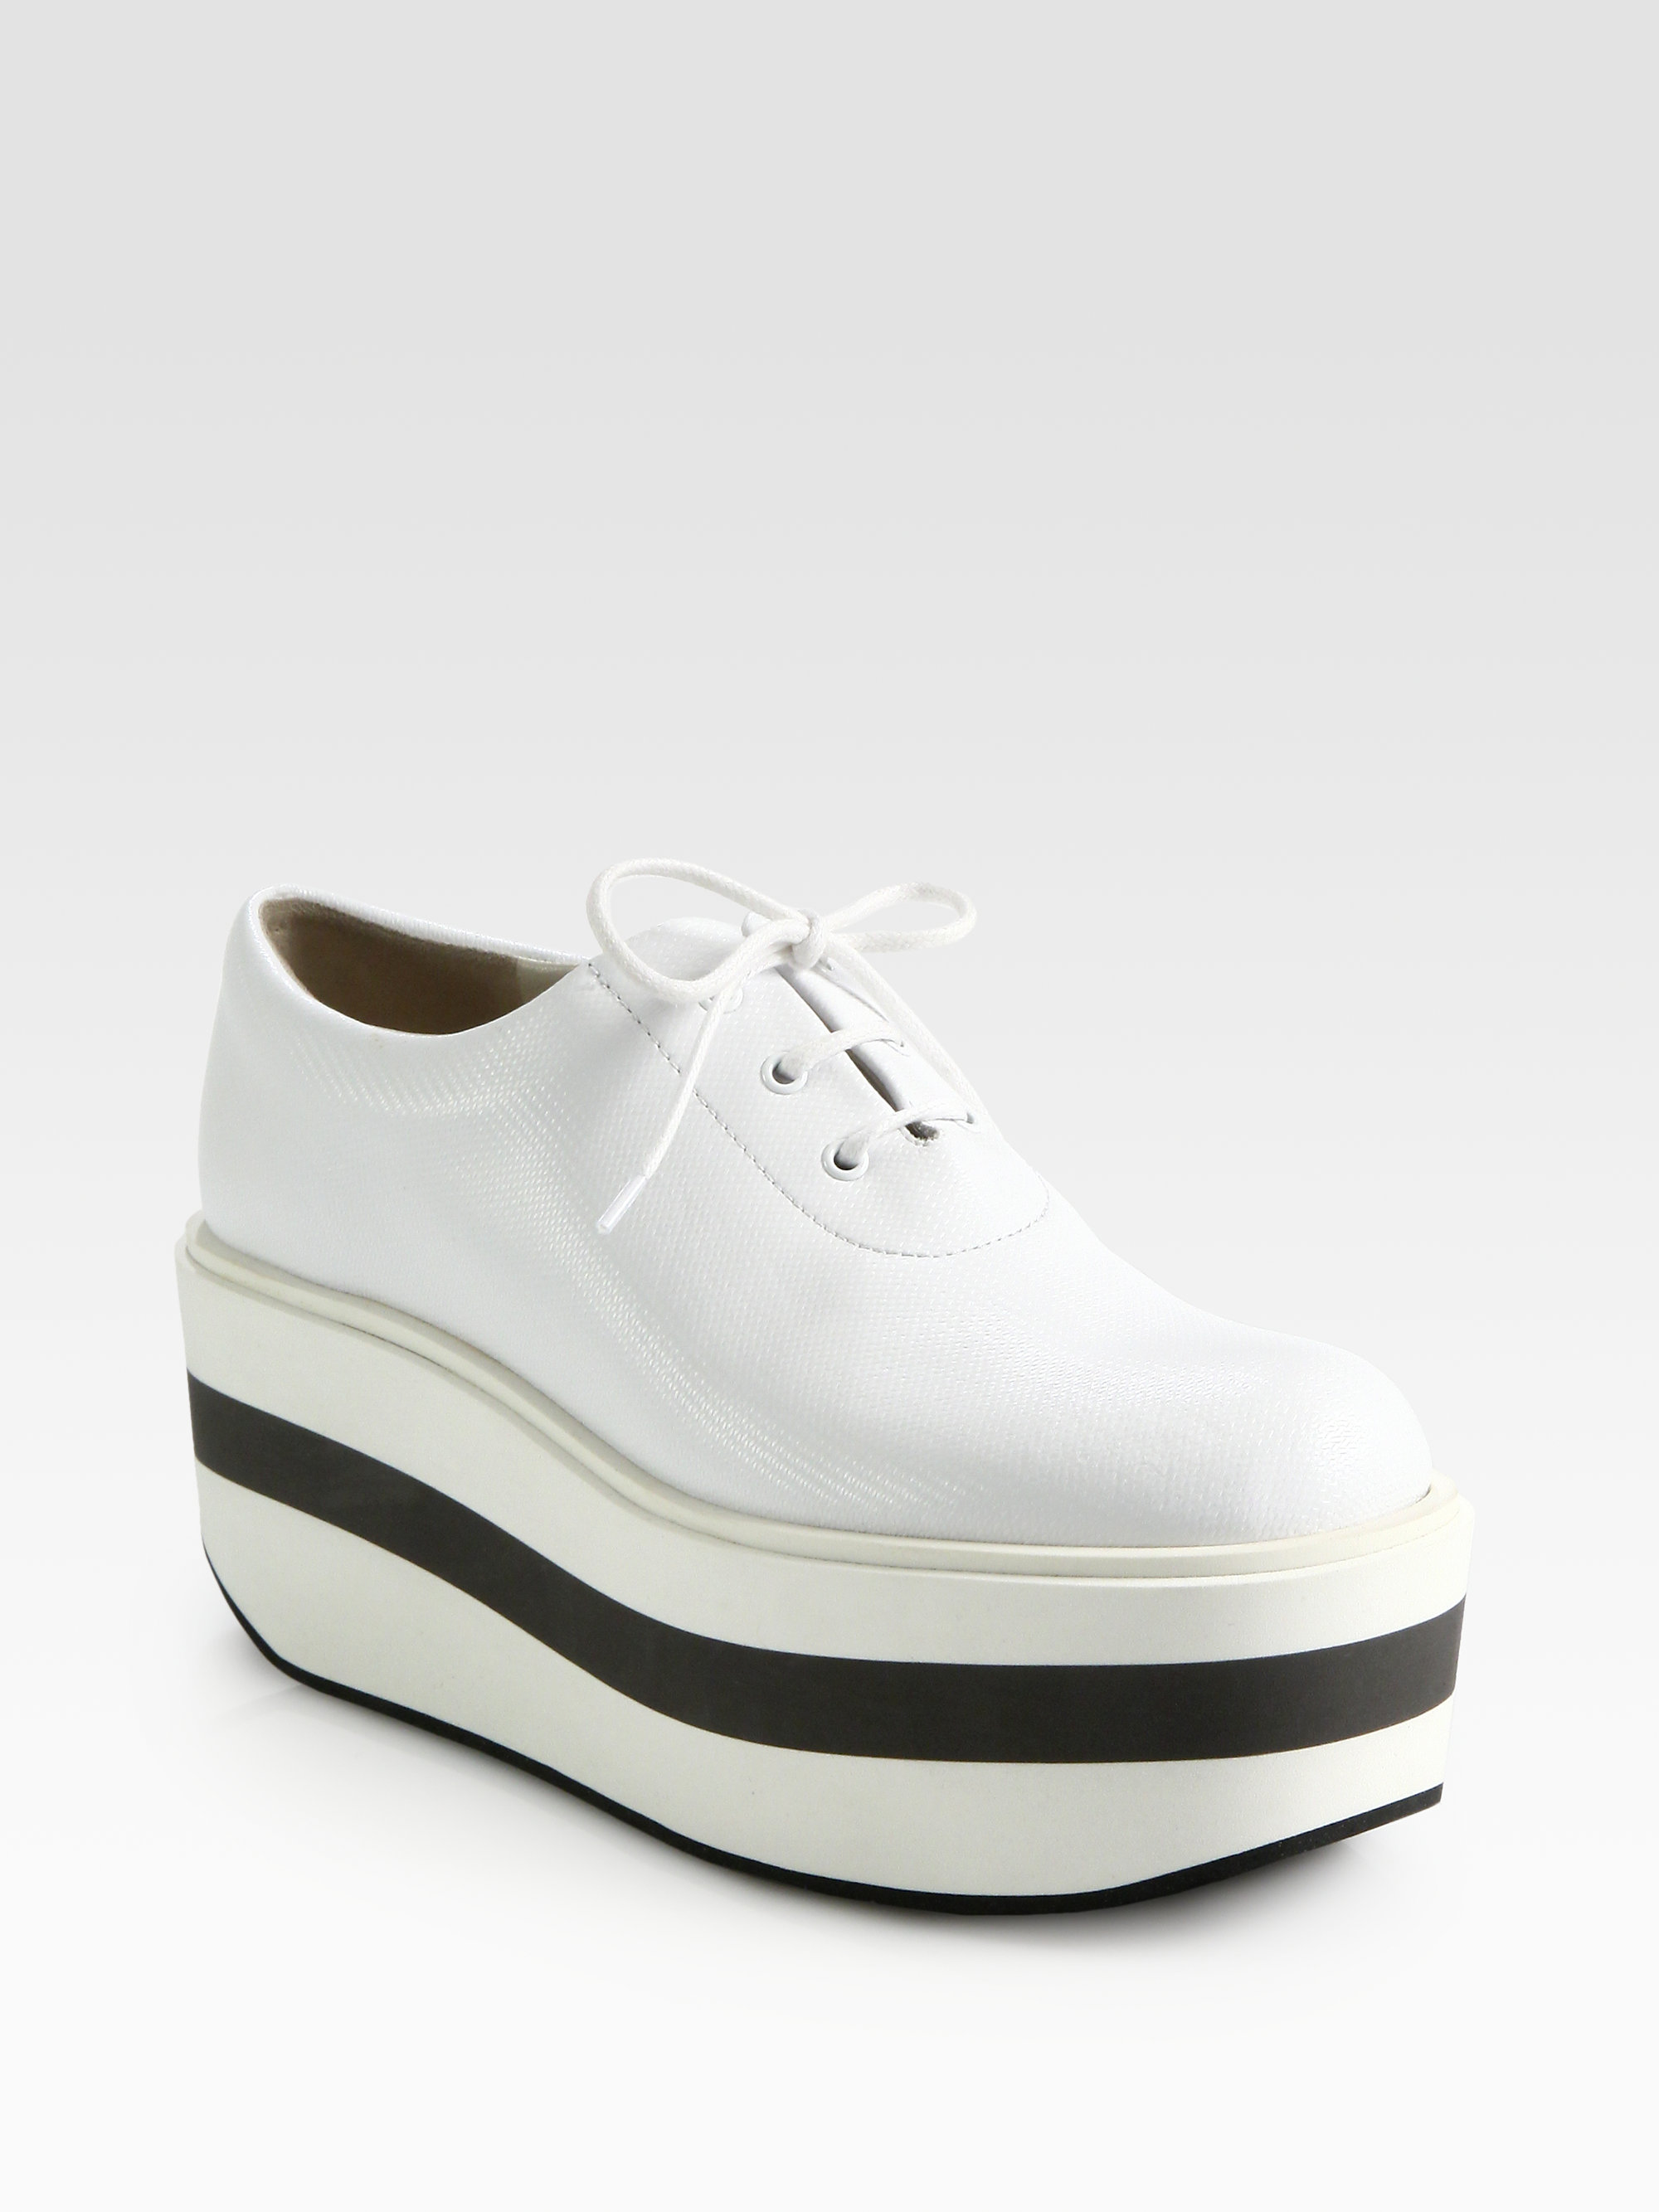 White Platform Shoes Topshop